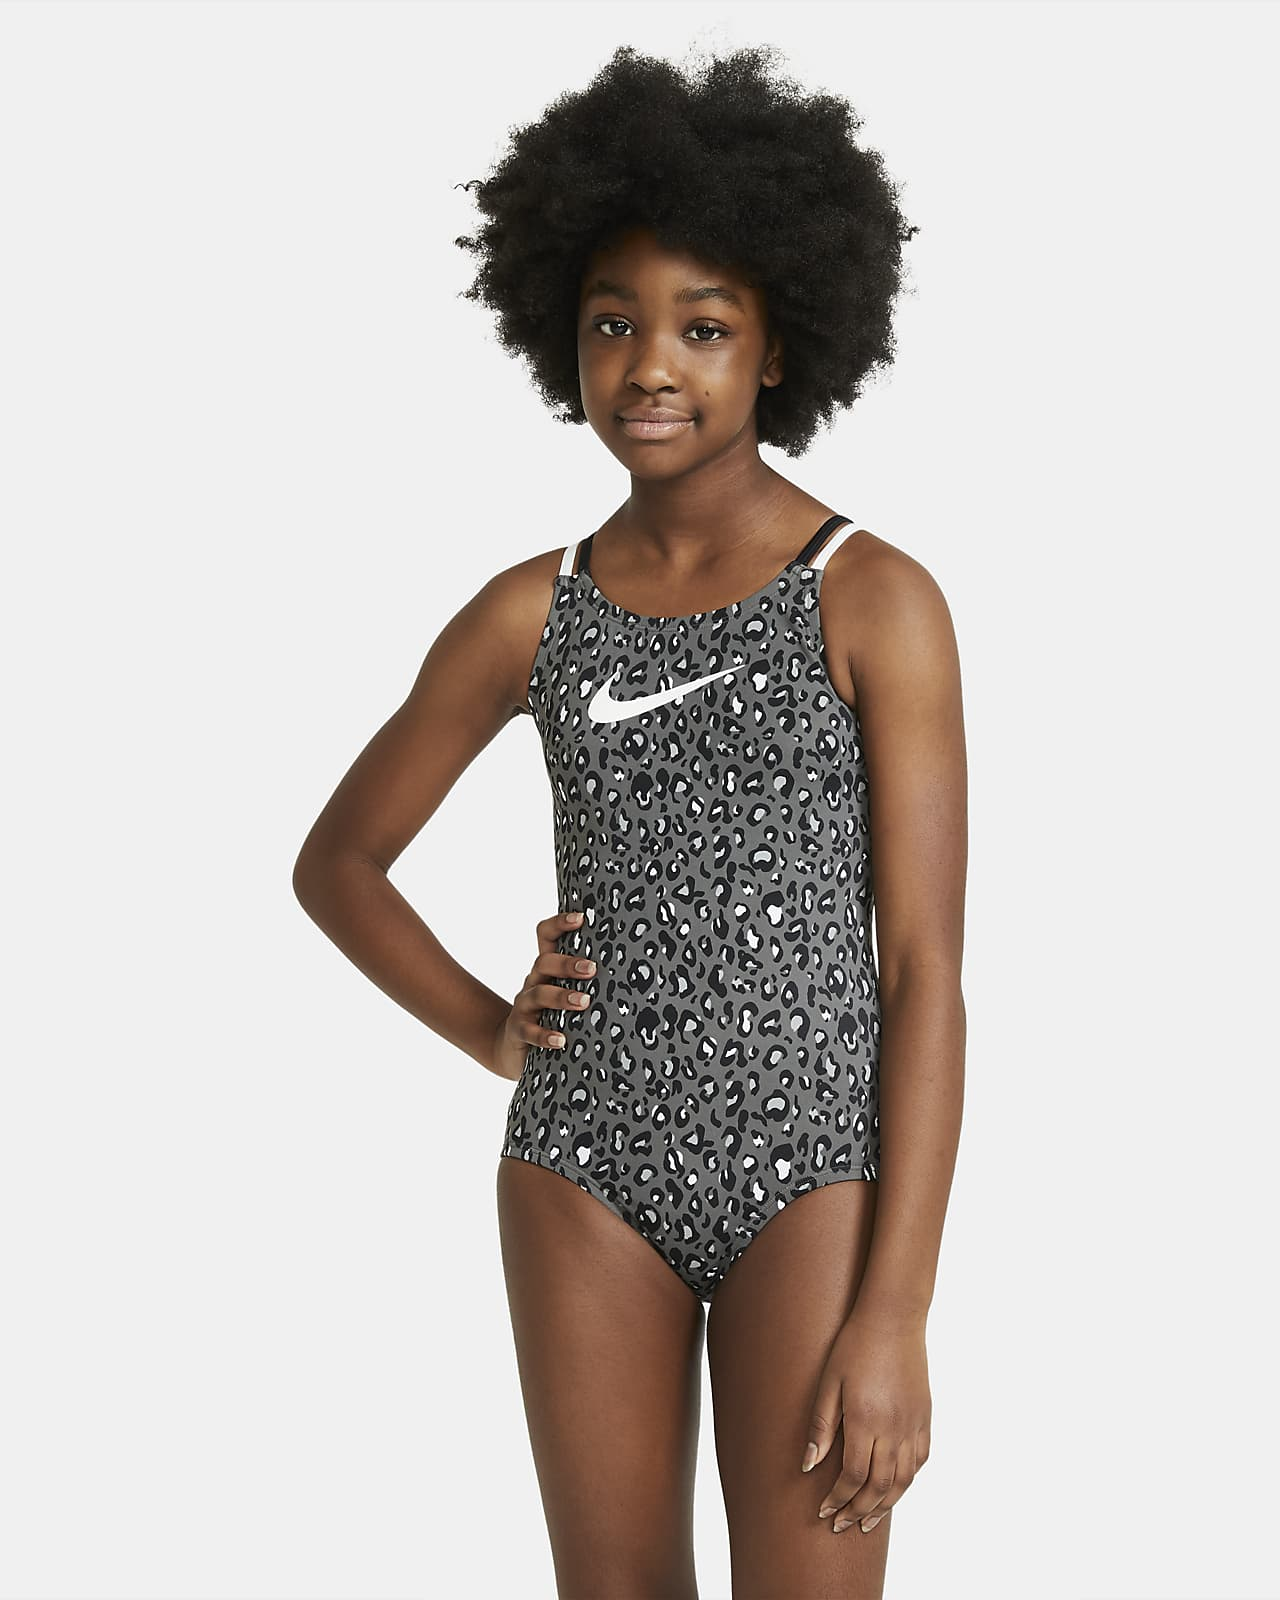 Nike Big Kids' (Girls') Spiderback 1-Piece Swimsuit